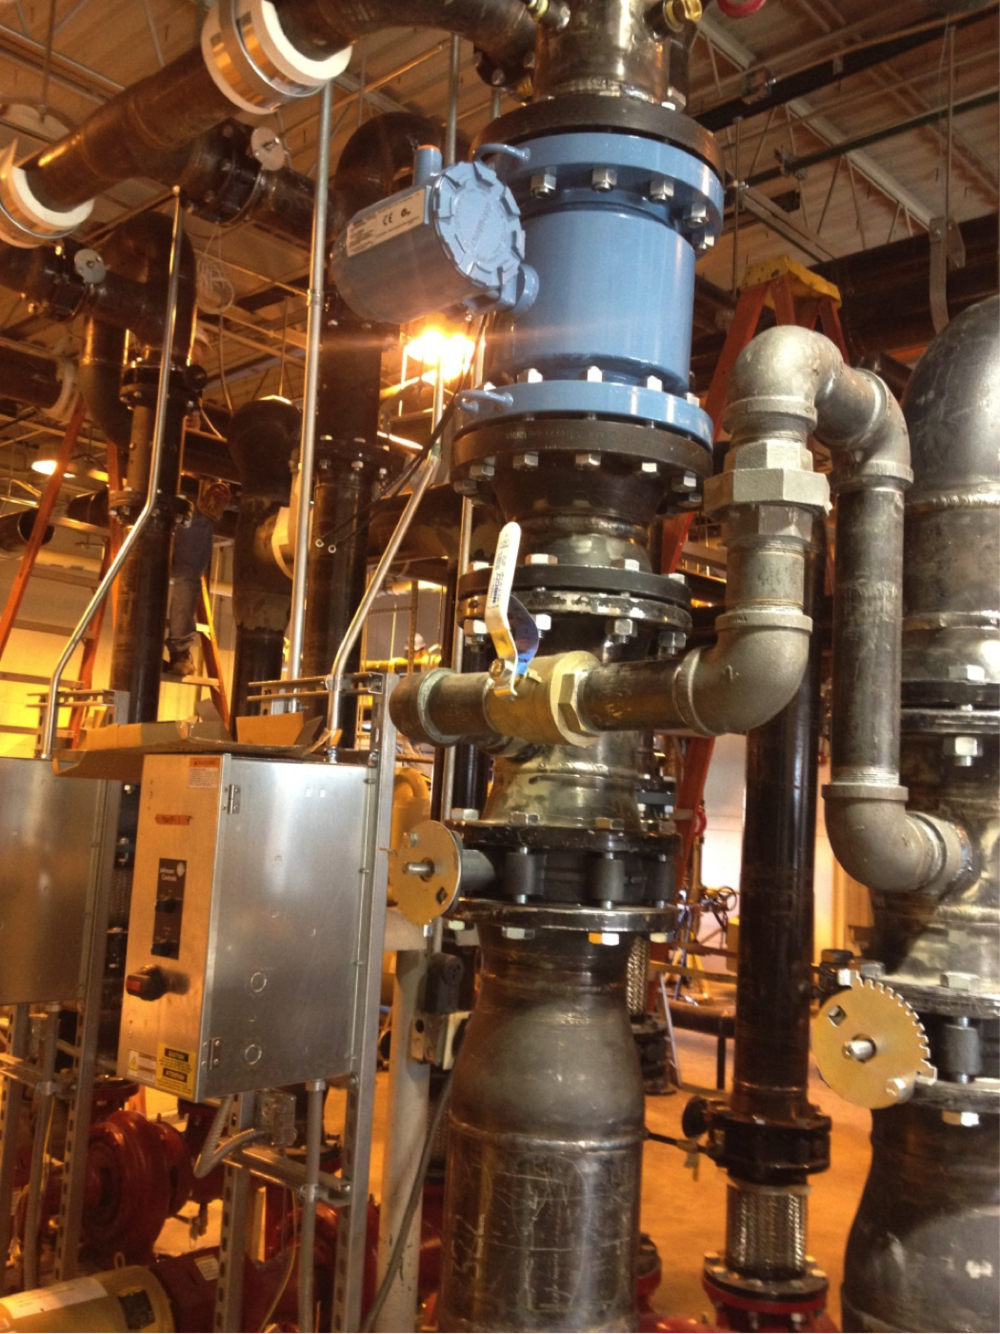 A view of the major piping and chiller unit.